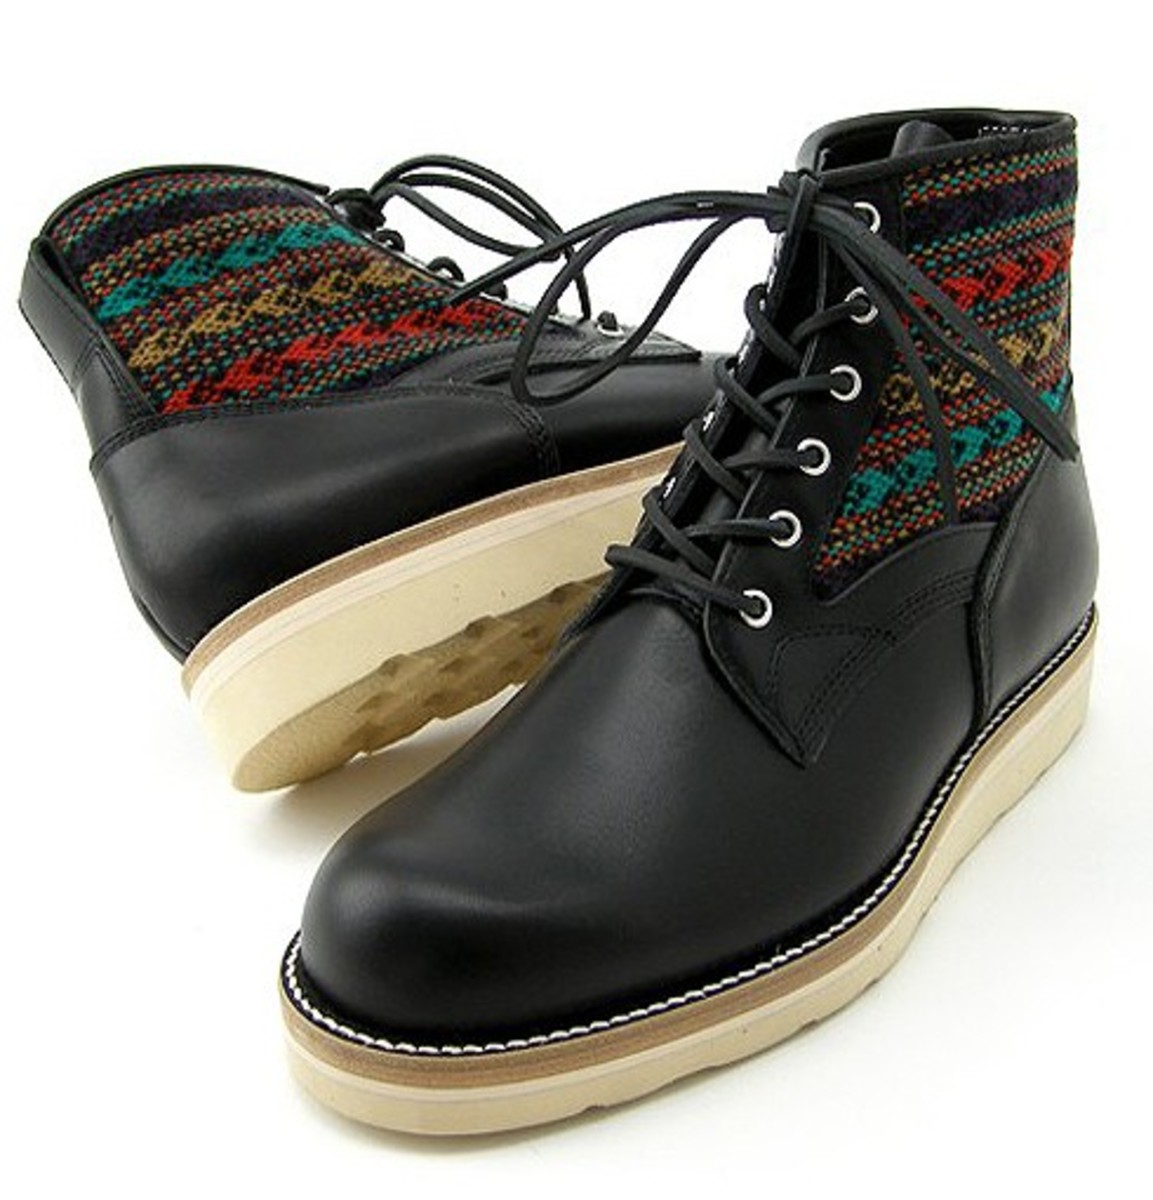 GDC - Union Work Boots